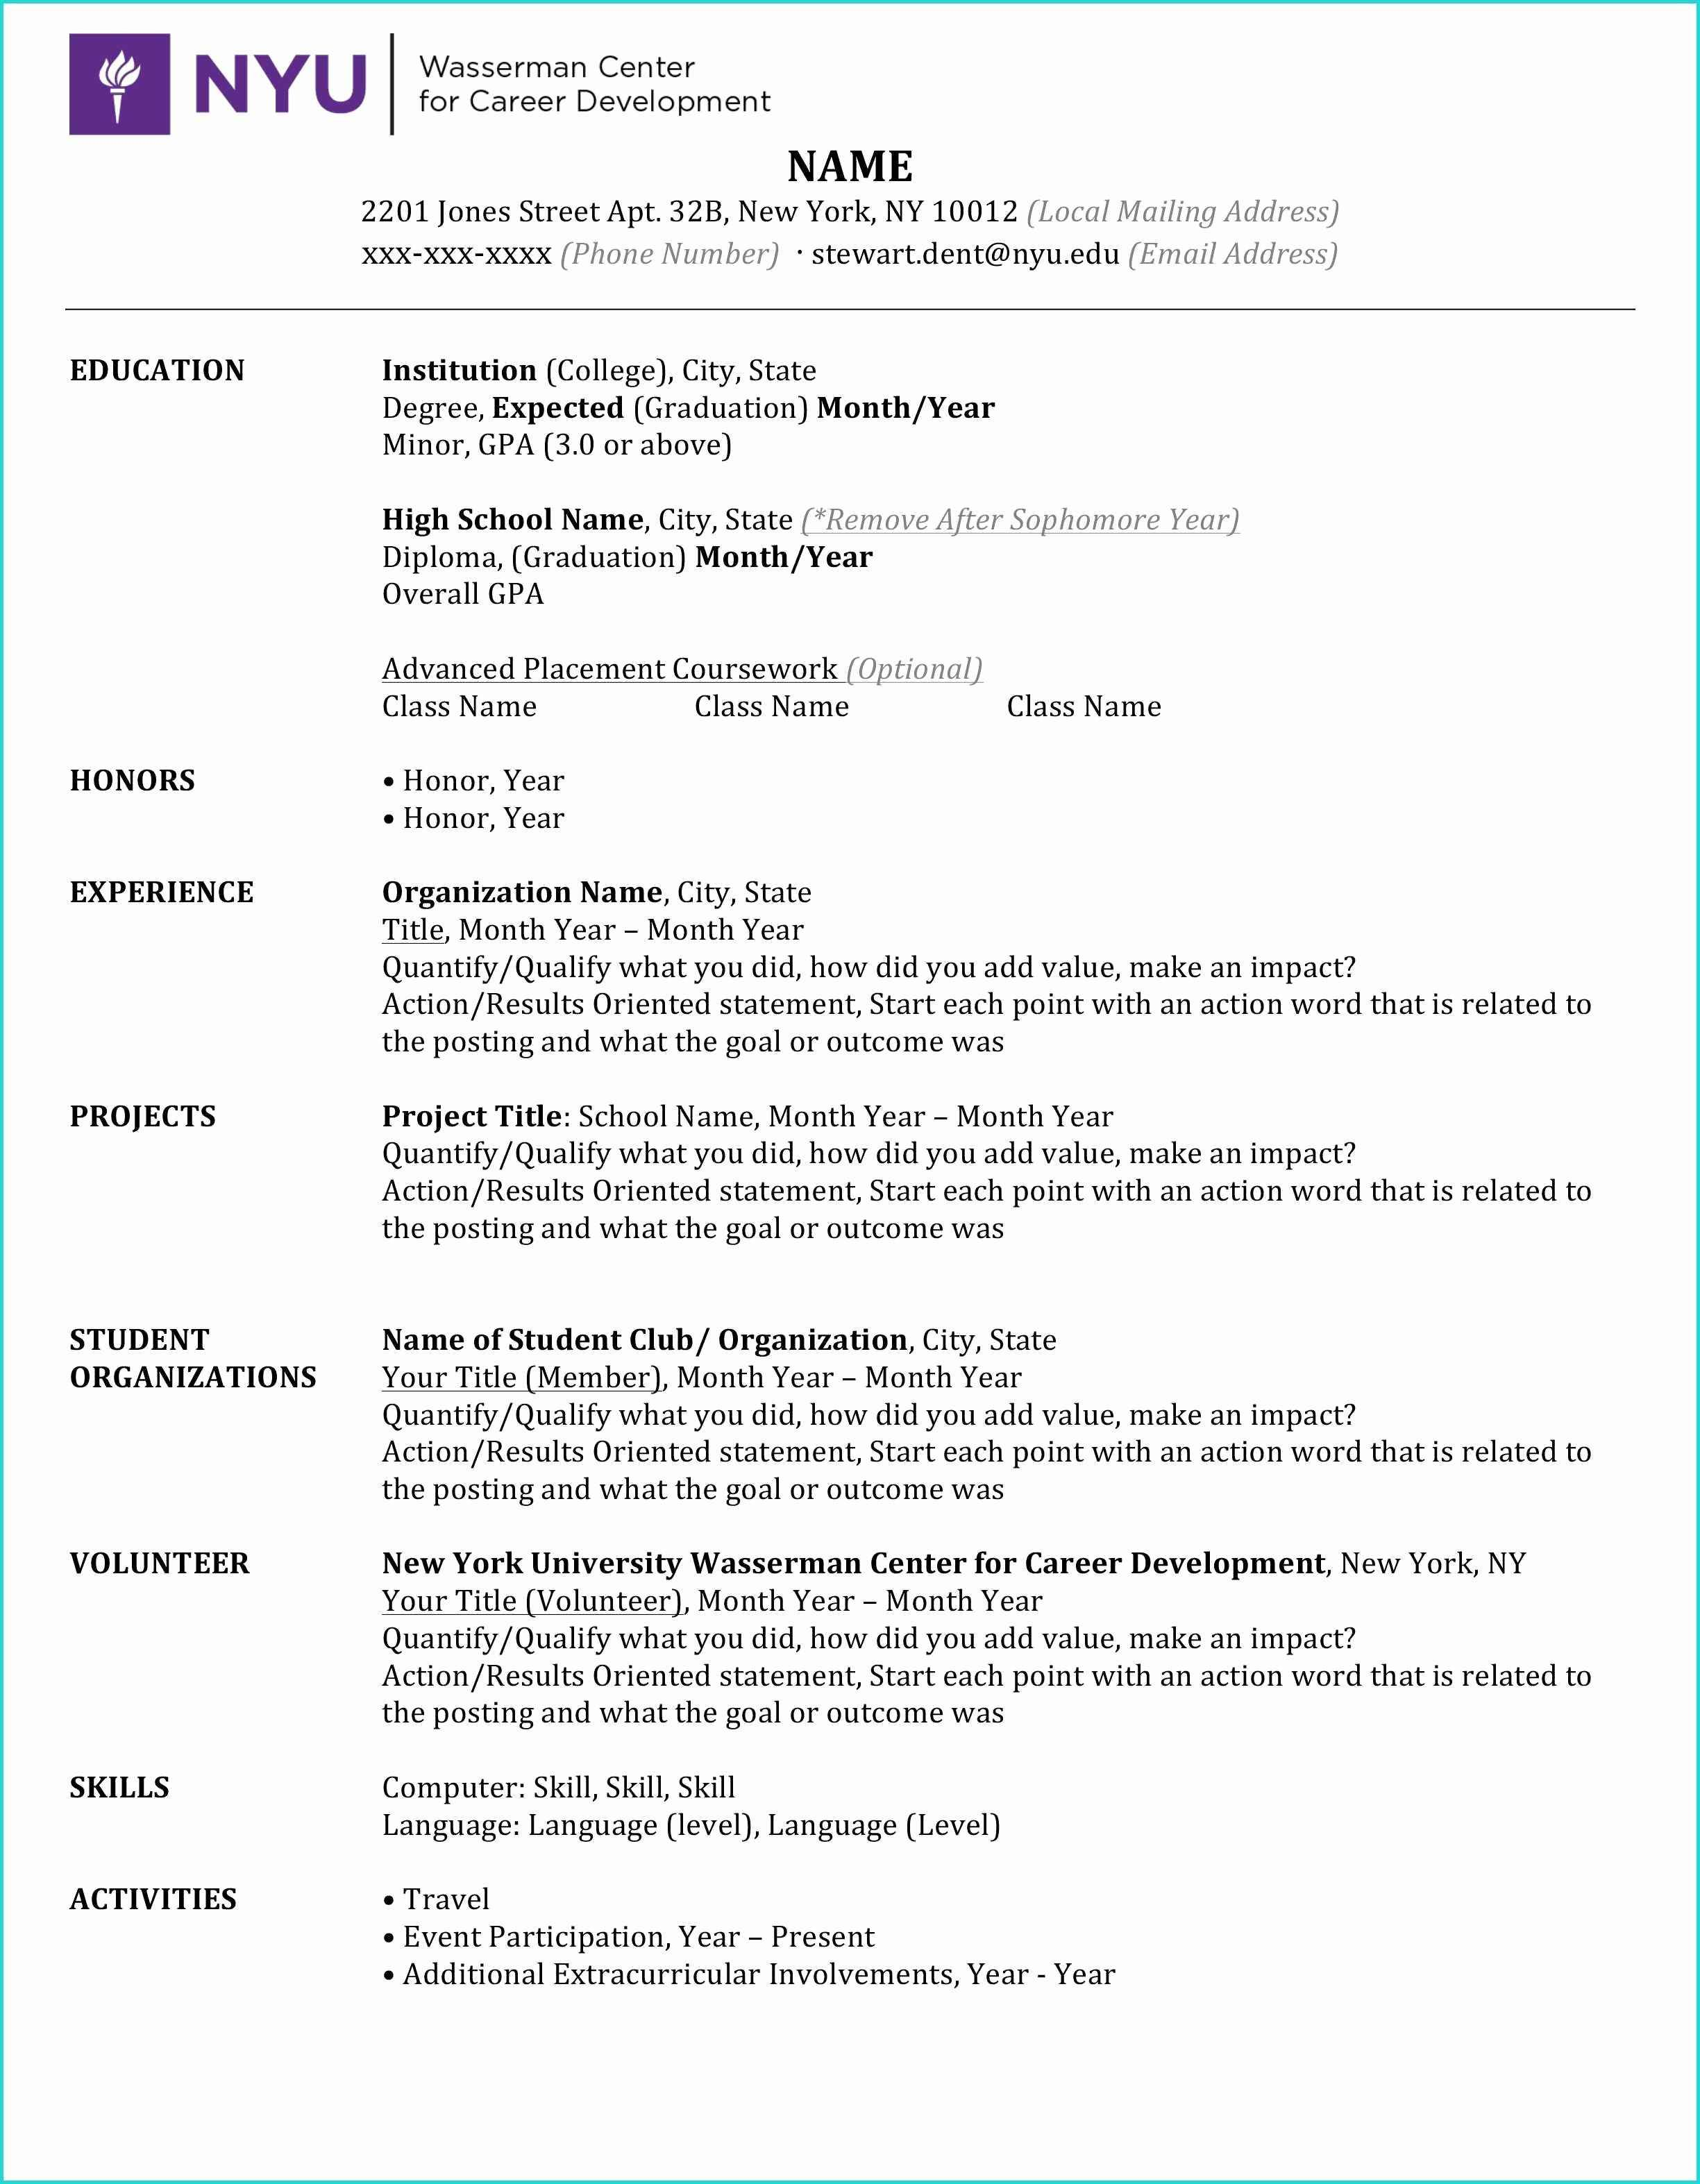 Free Resume Guide Template Resume examples, High school